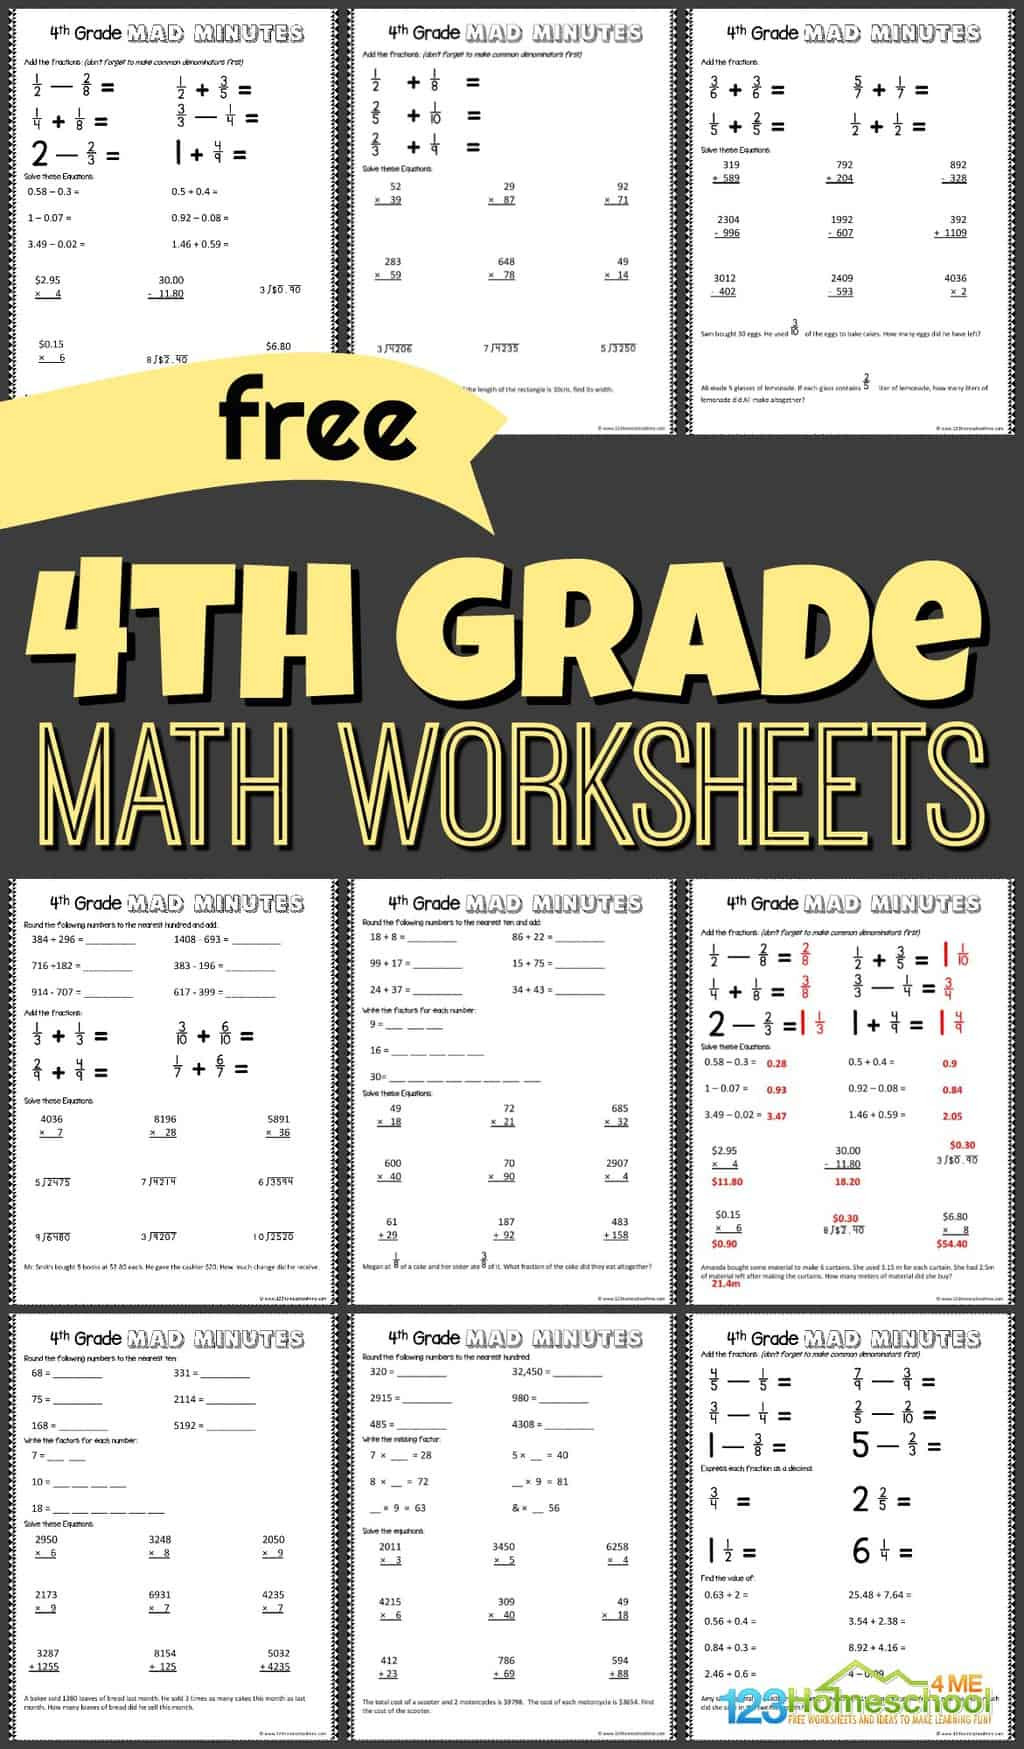 Saxon Math 2 Worksheets Pdf Math Worksheet 4th Gradeorksheets Printable Math Free